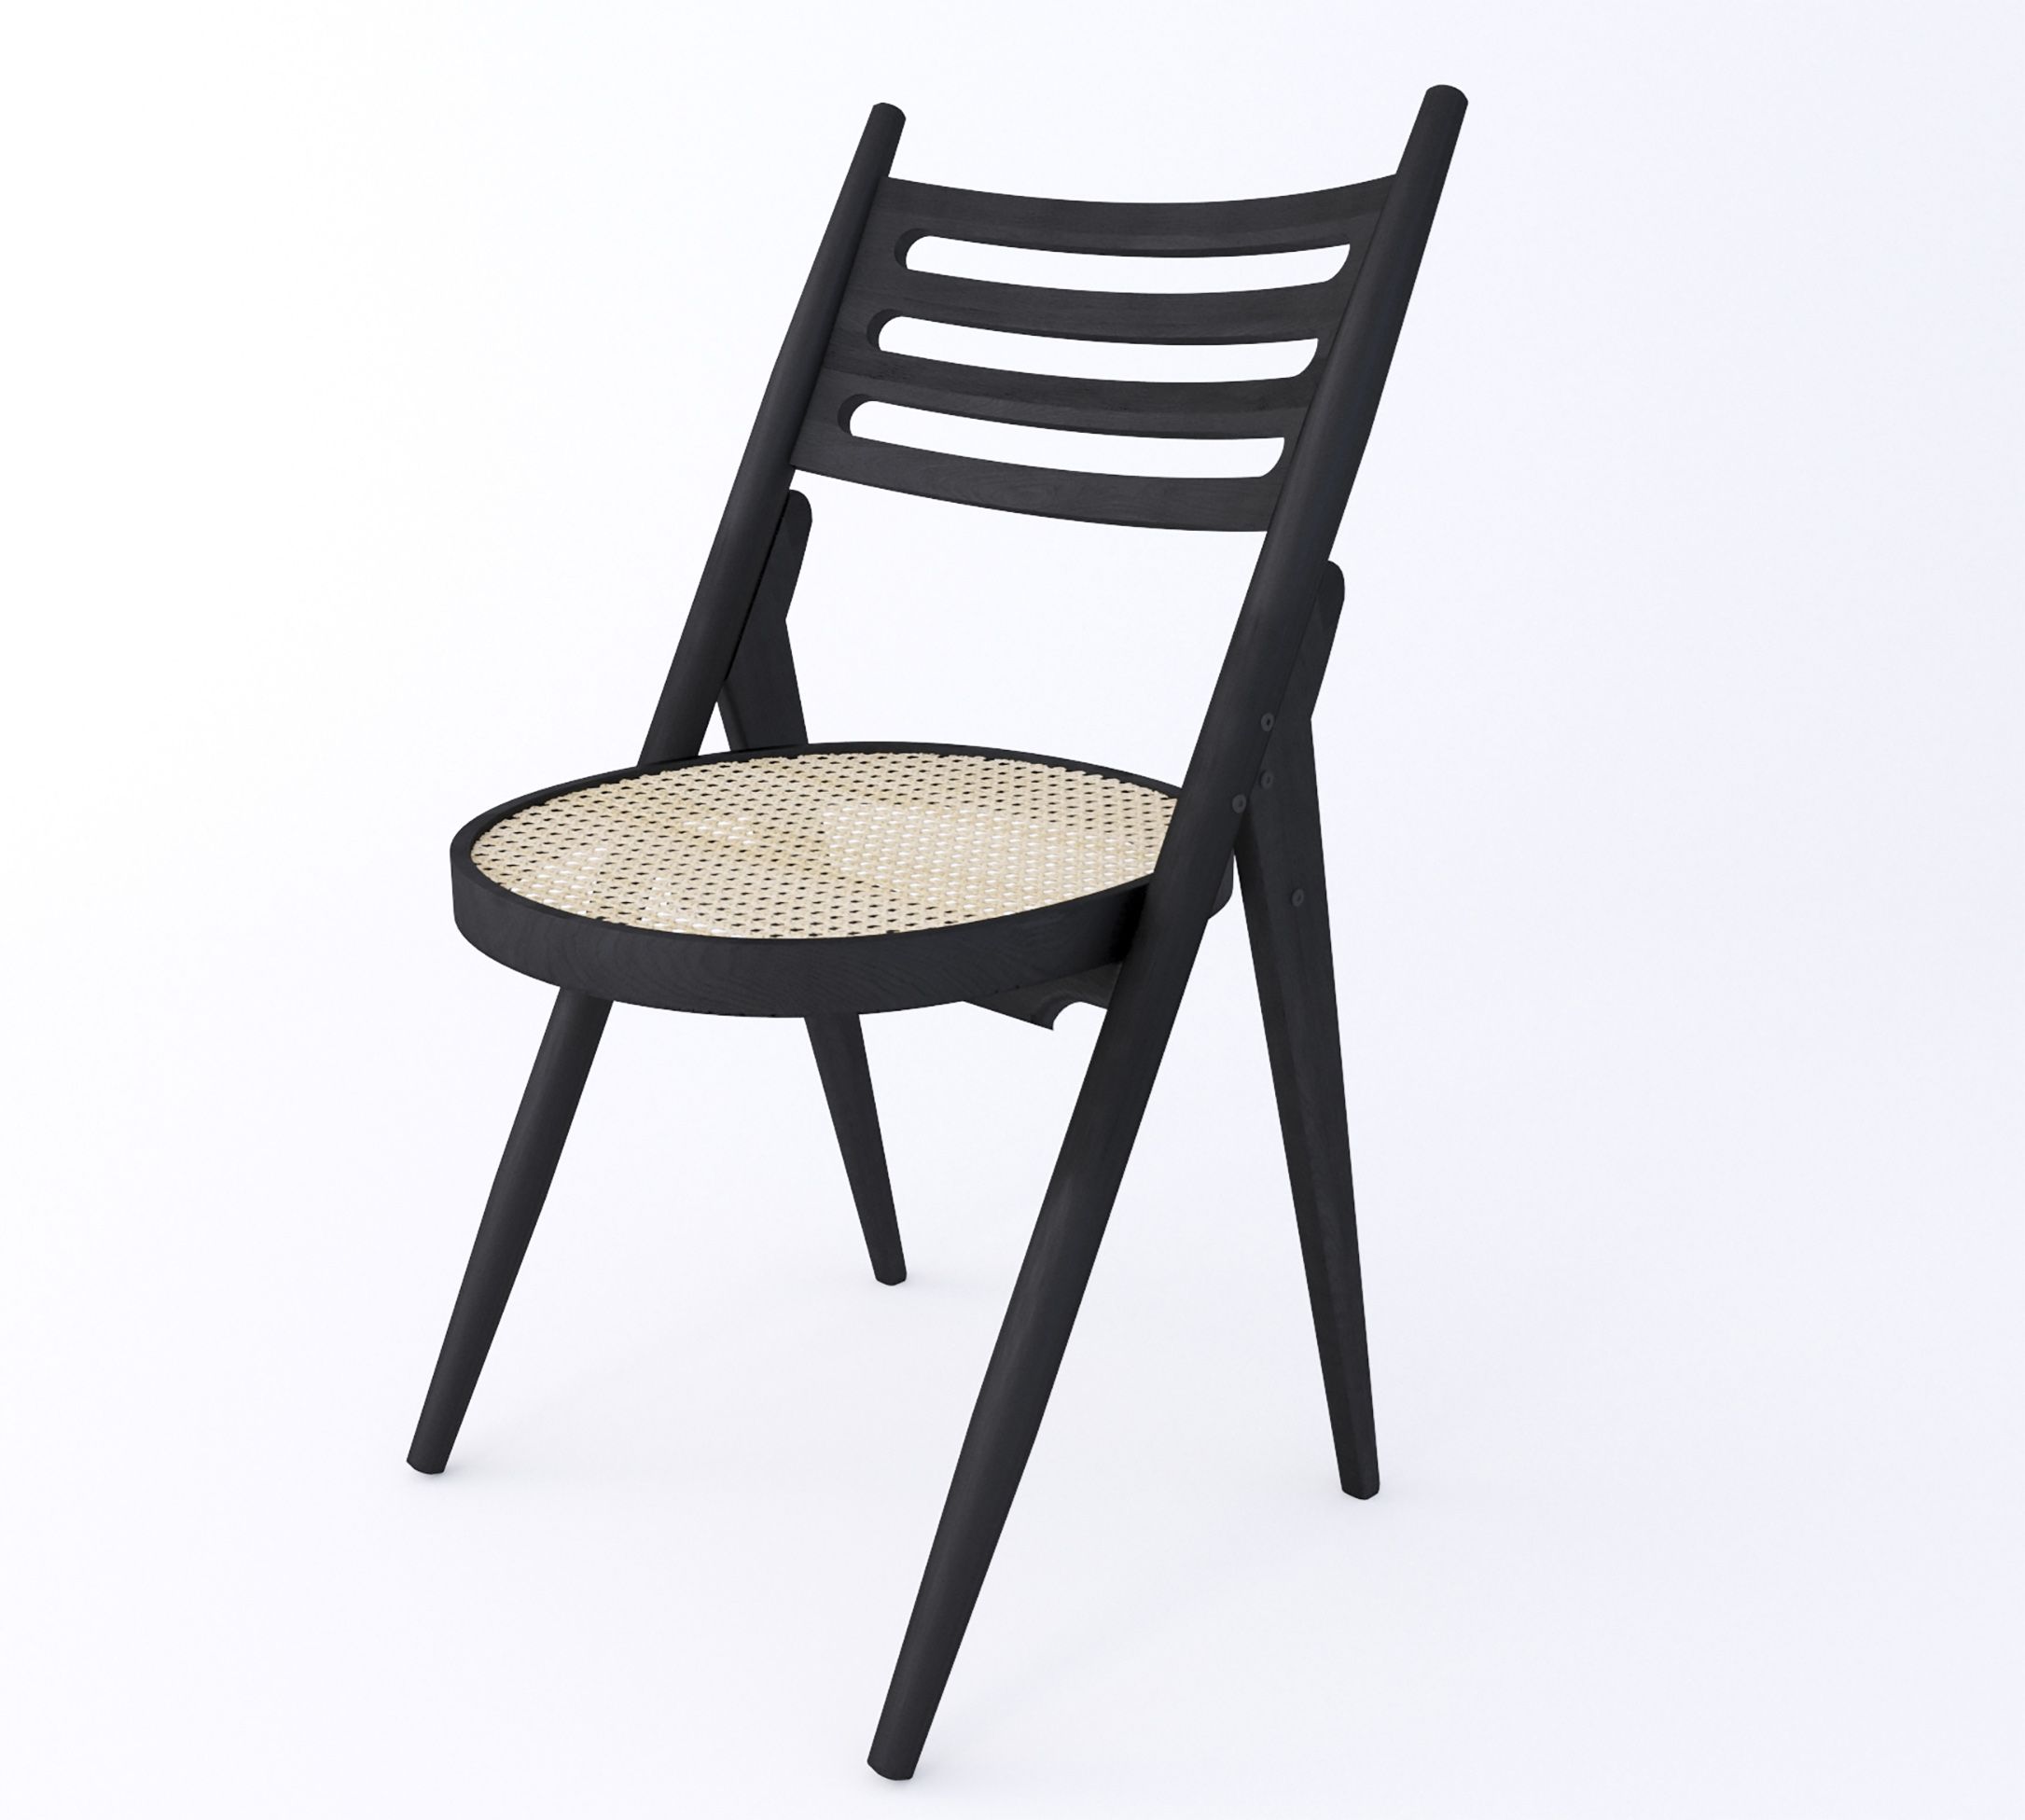 Folding One chair